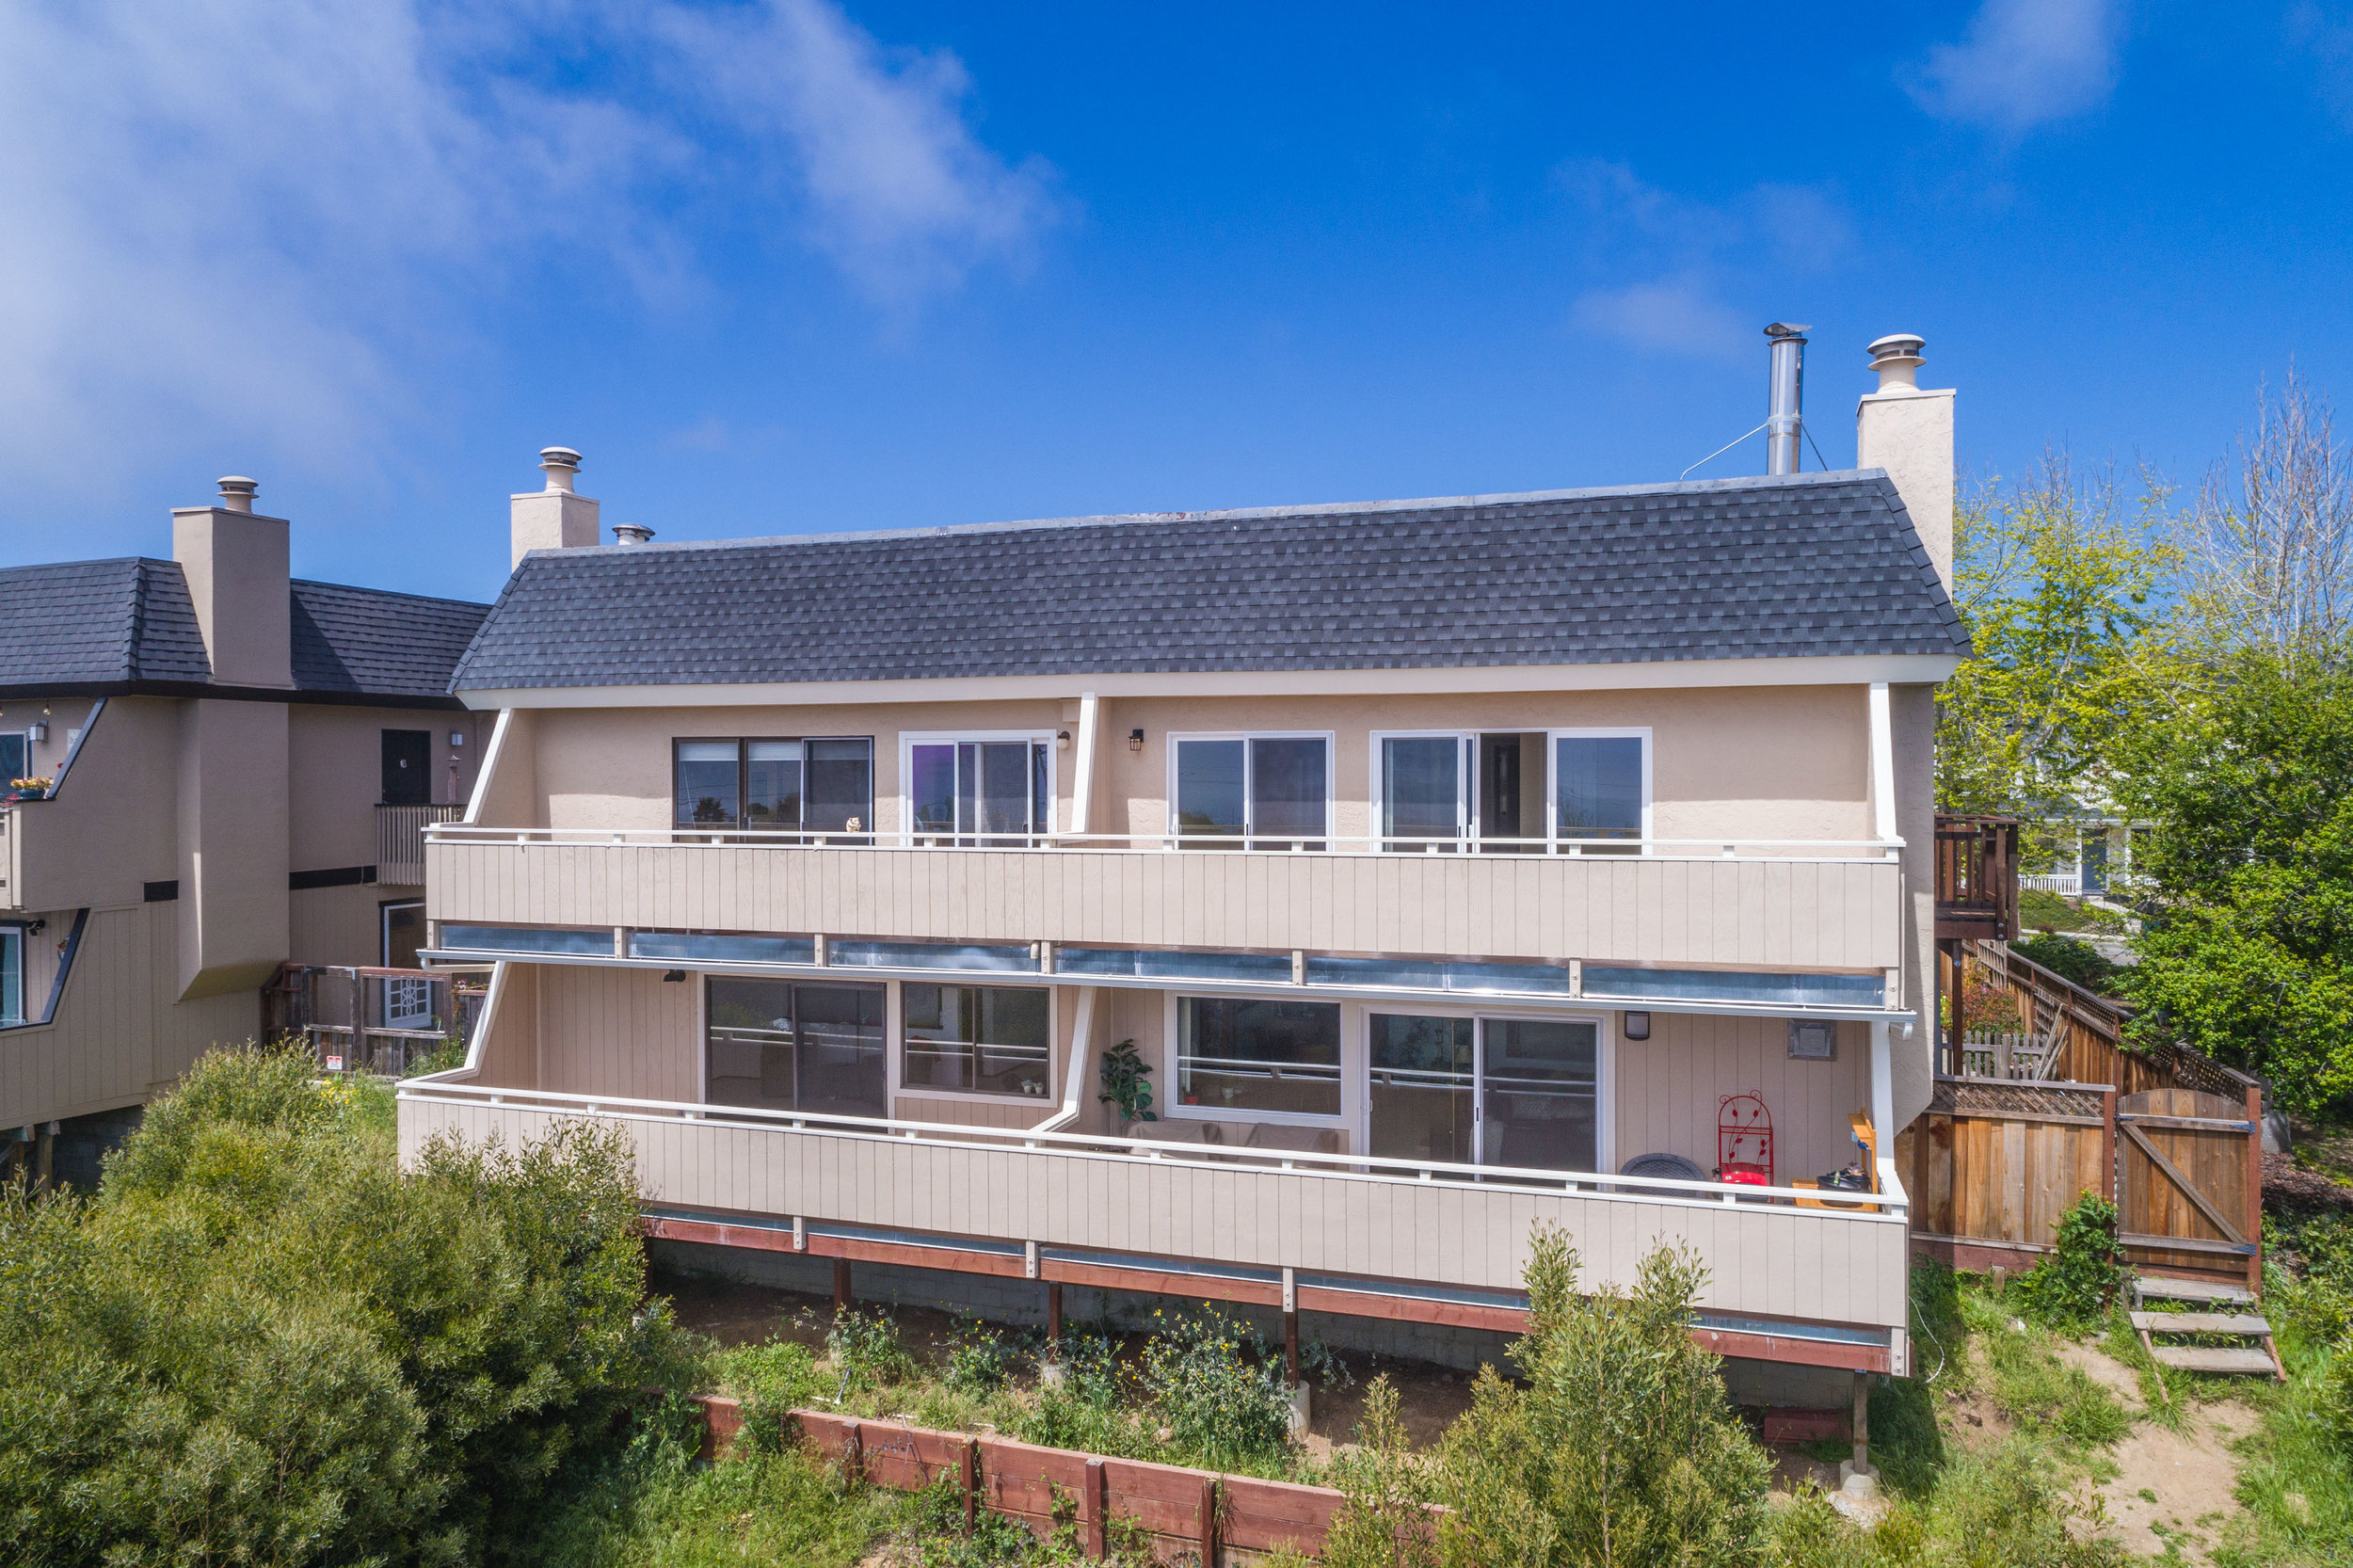 Ocean View Real Estate For Sale